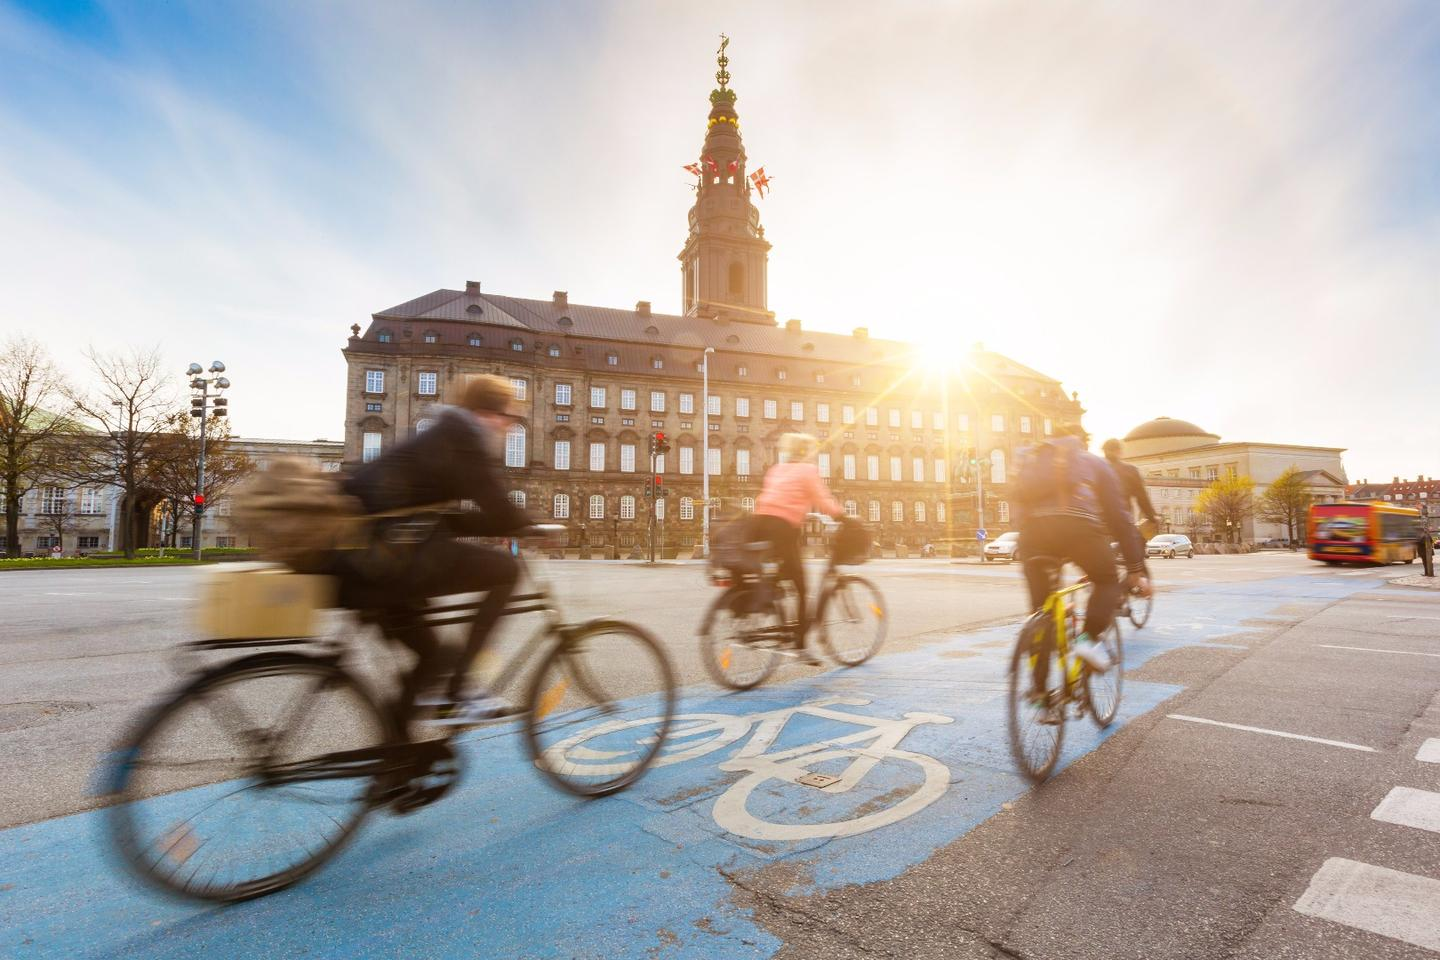 Bicycle commuters on the streets of Copenhagen